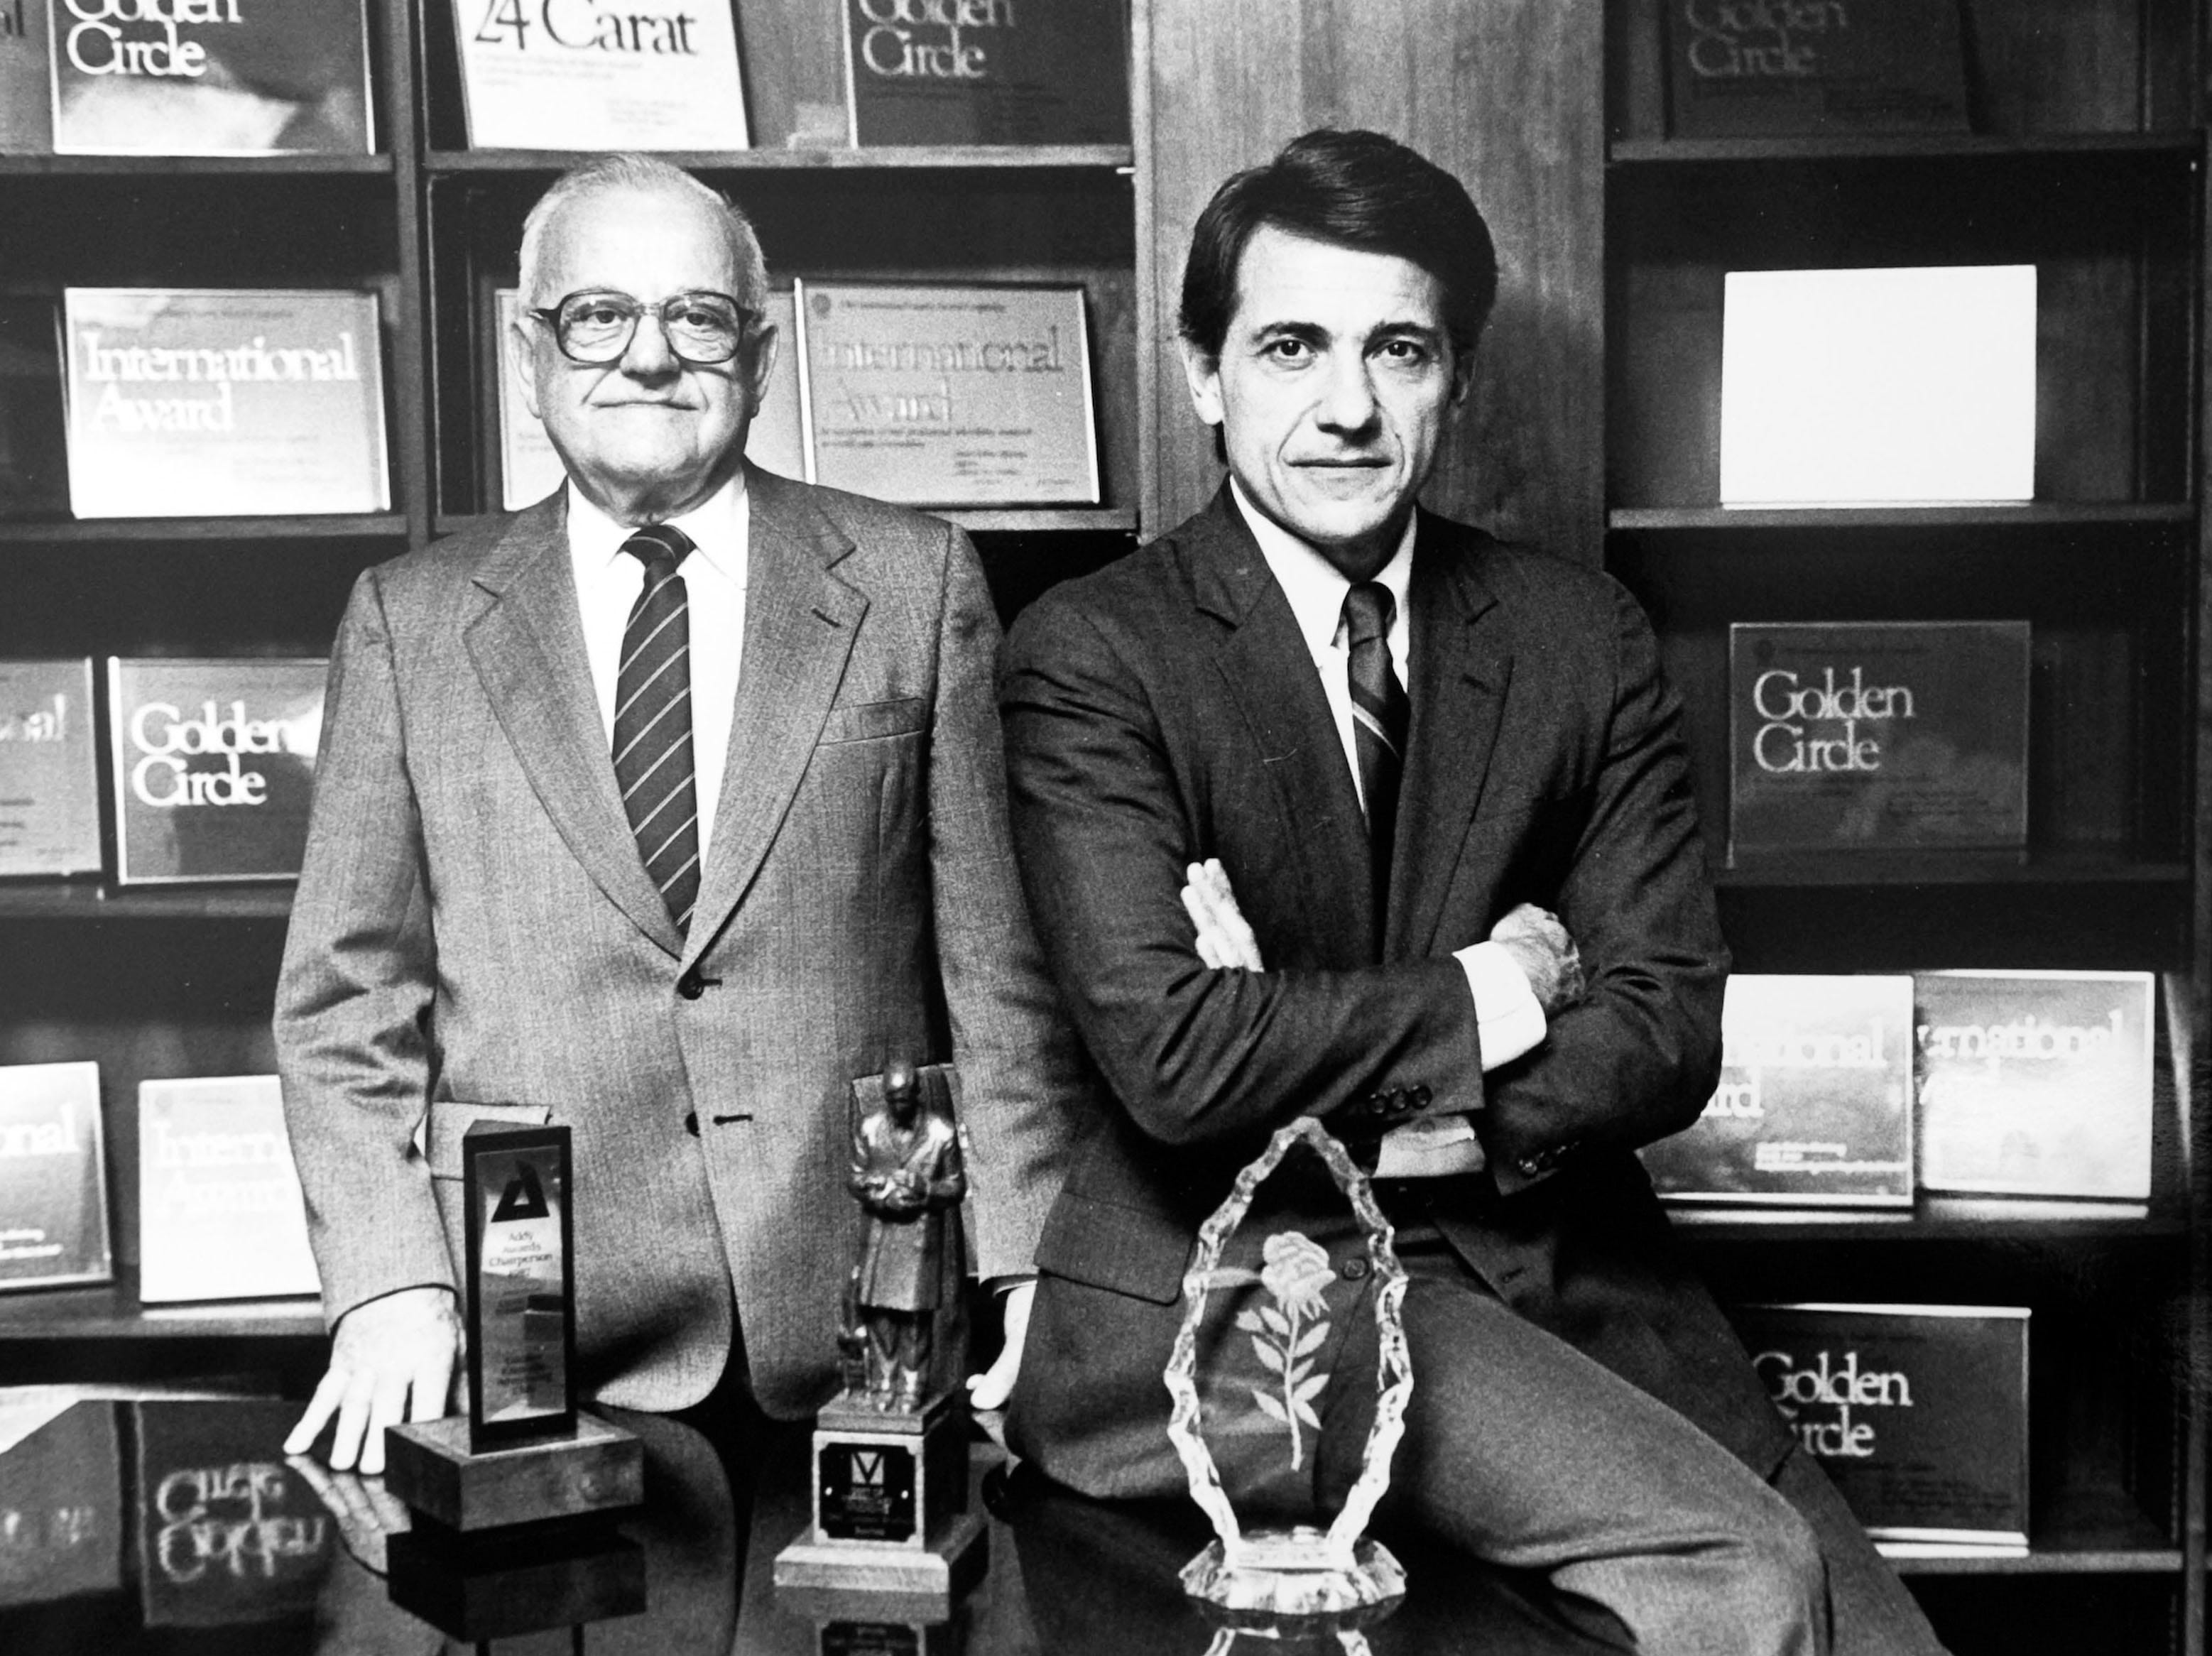 In this photograph dated to 1984, Charles Tombras Sr., left, founder of The Tombras Group is pictured with his son Charles Tombras Jr. at their offices on Concord St.